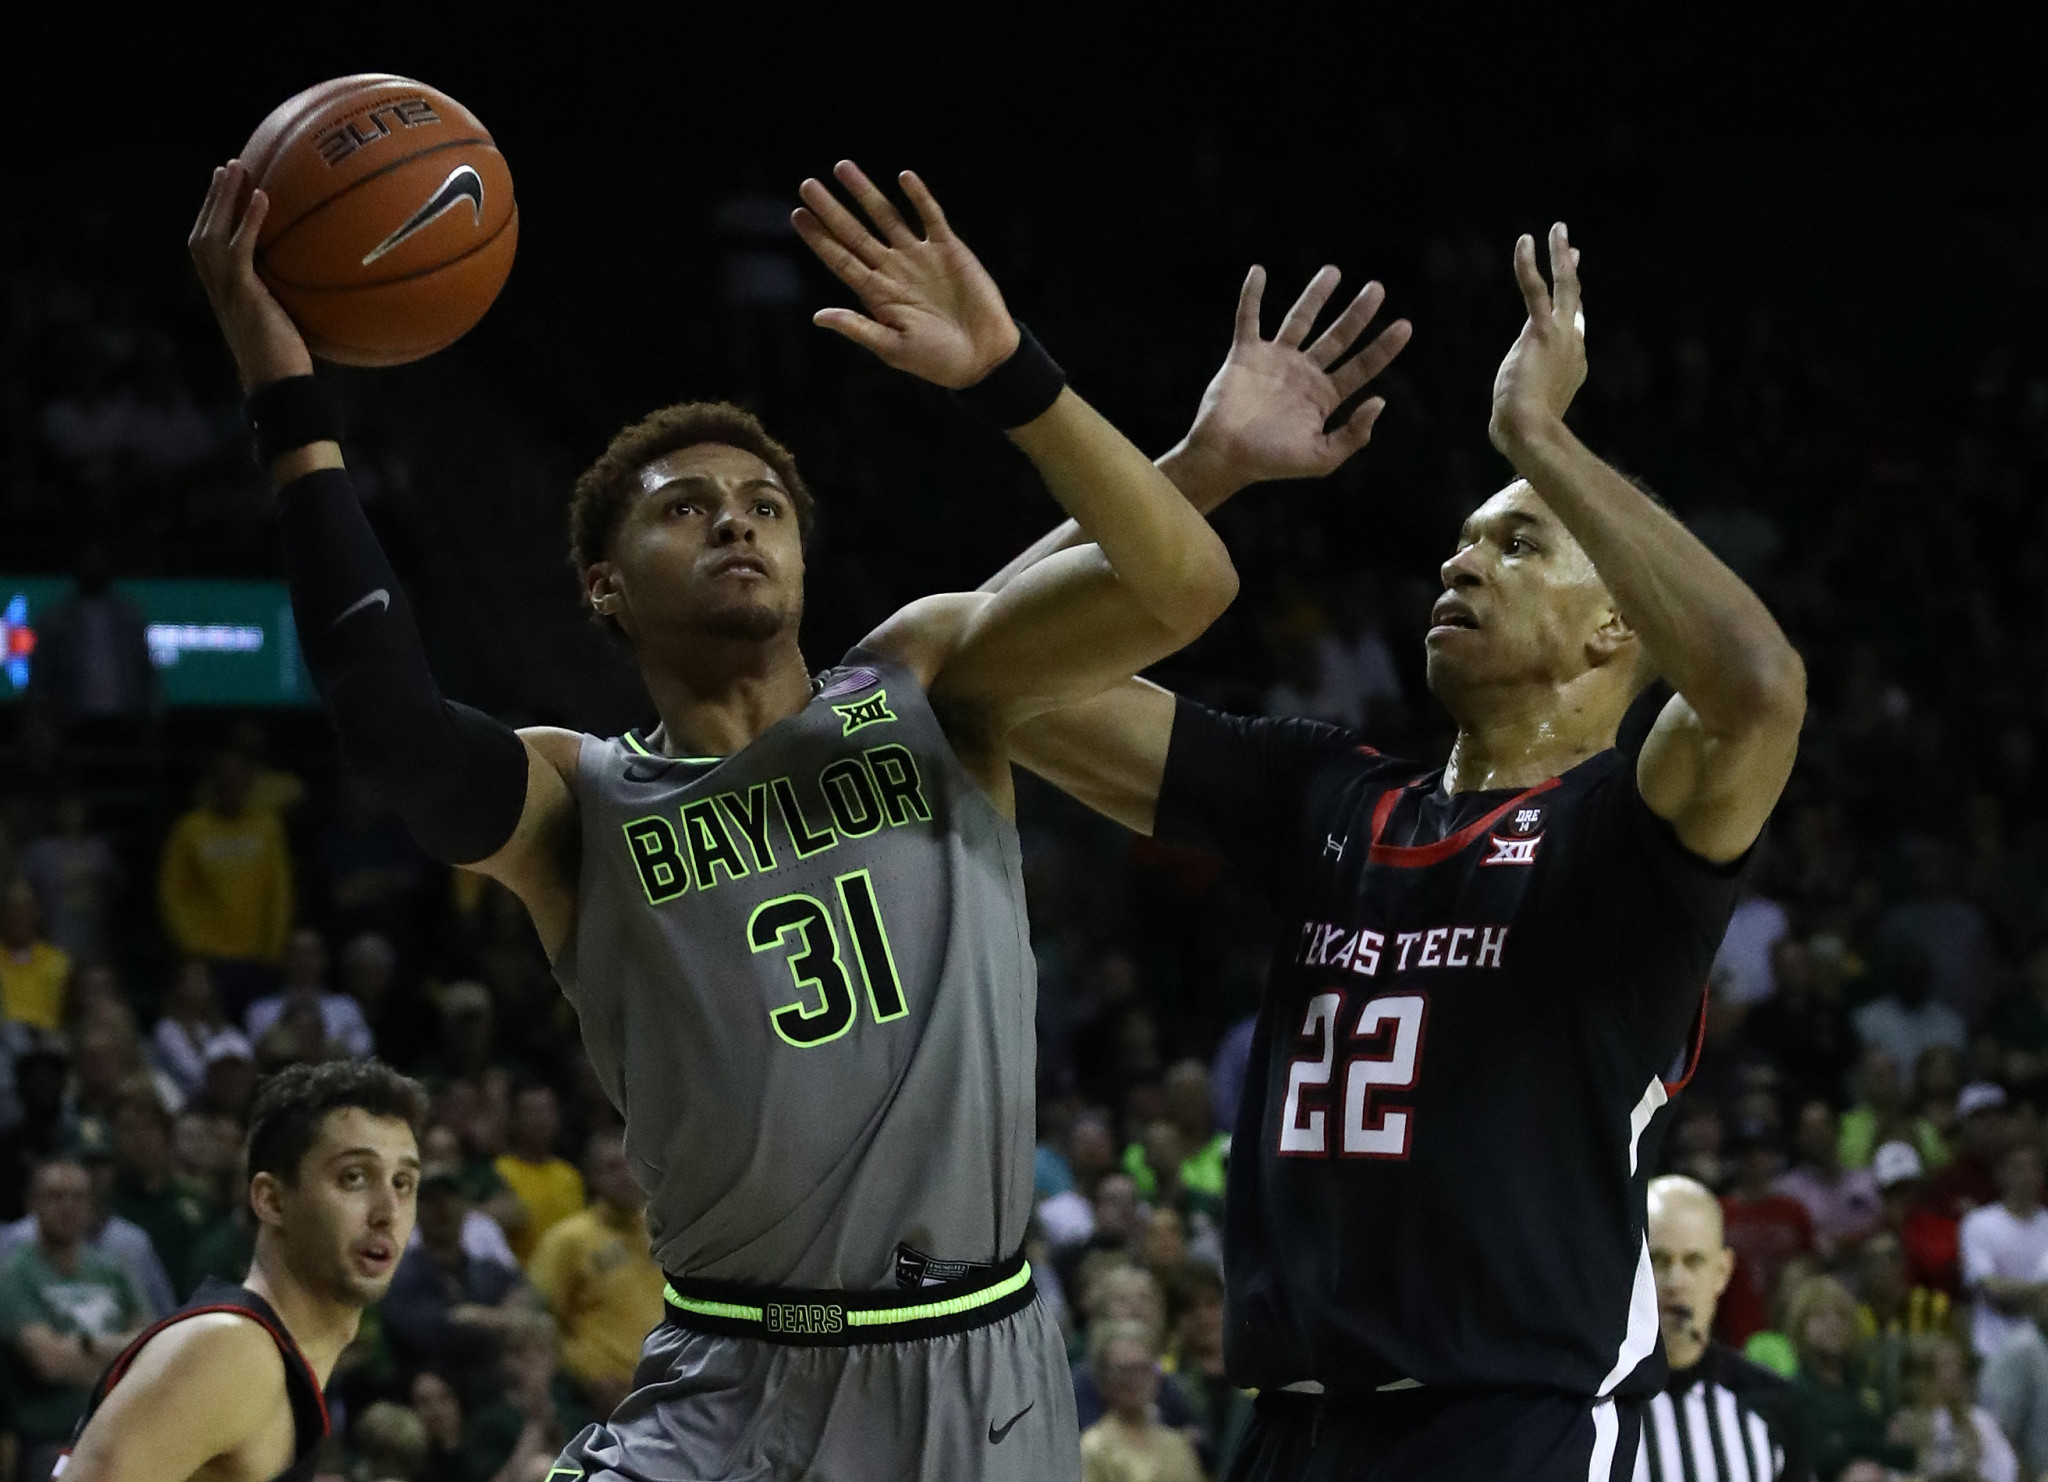 Baylor Bears will hope to continue United States medal success in the basketball event ©Getty Images